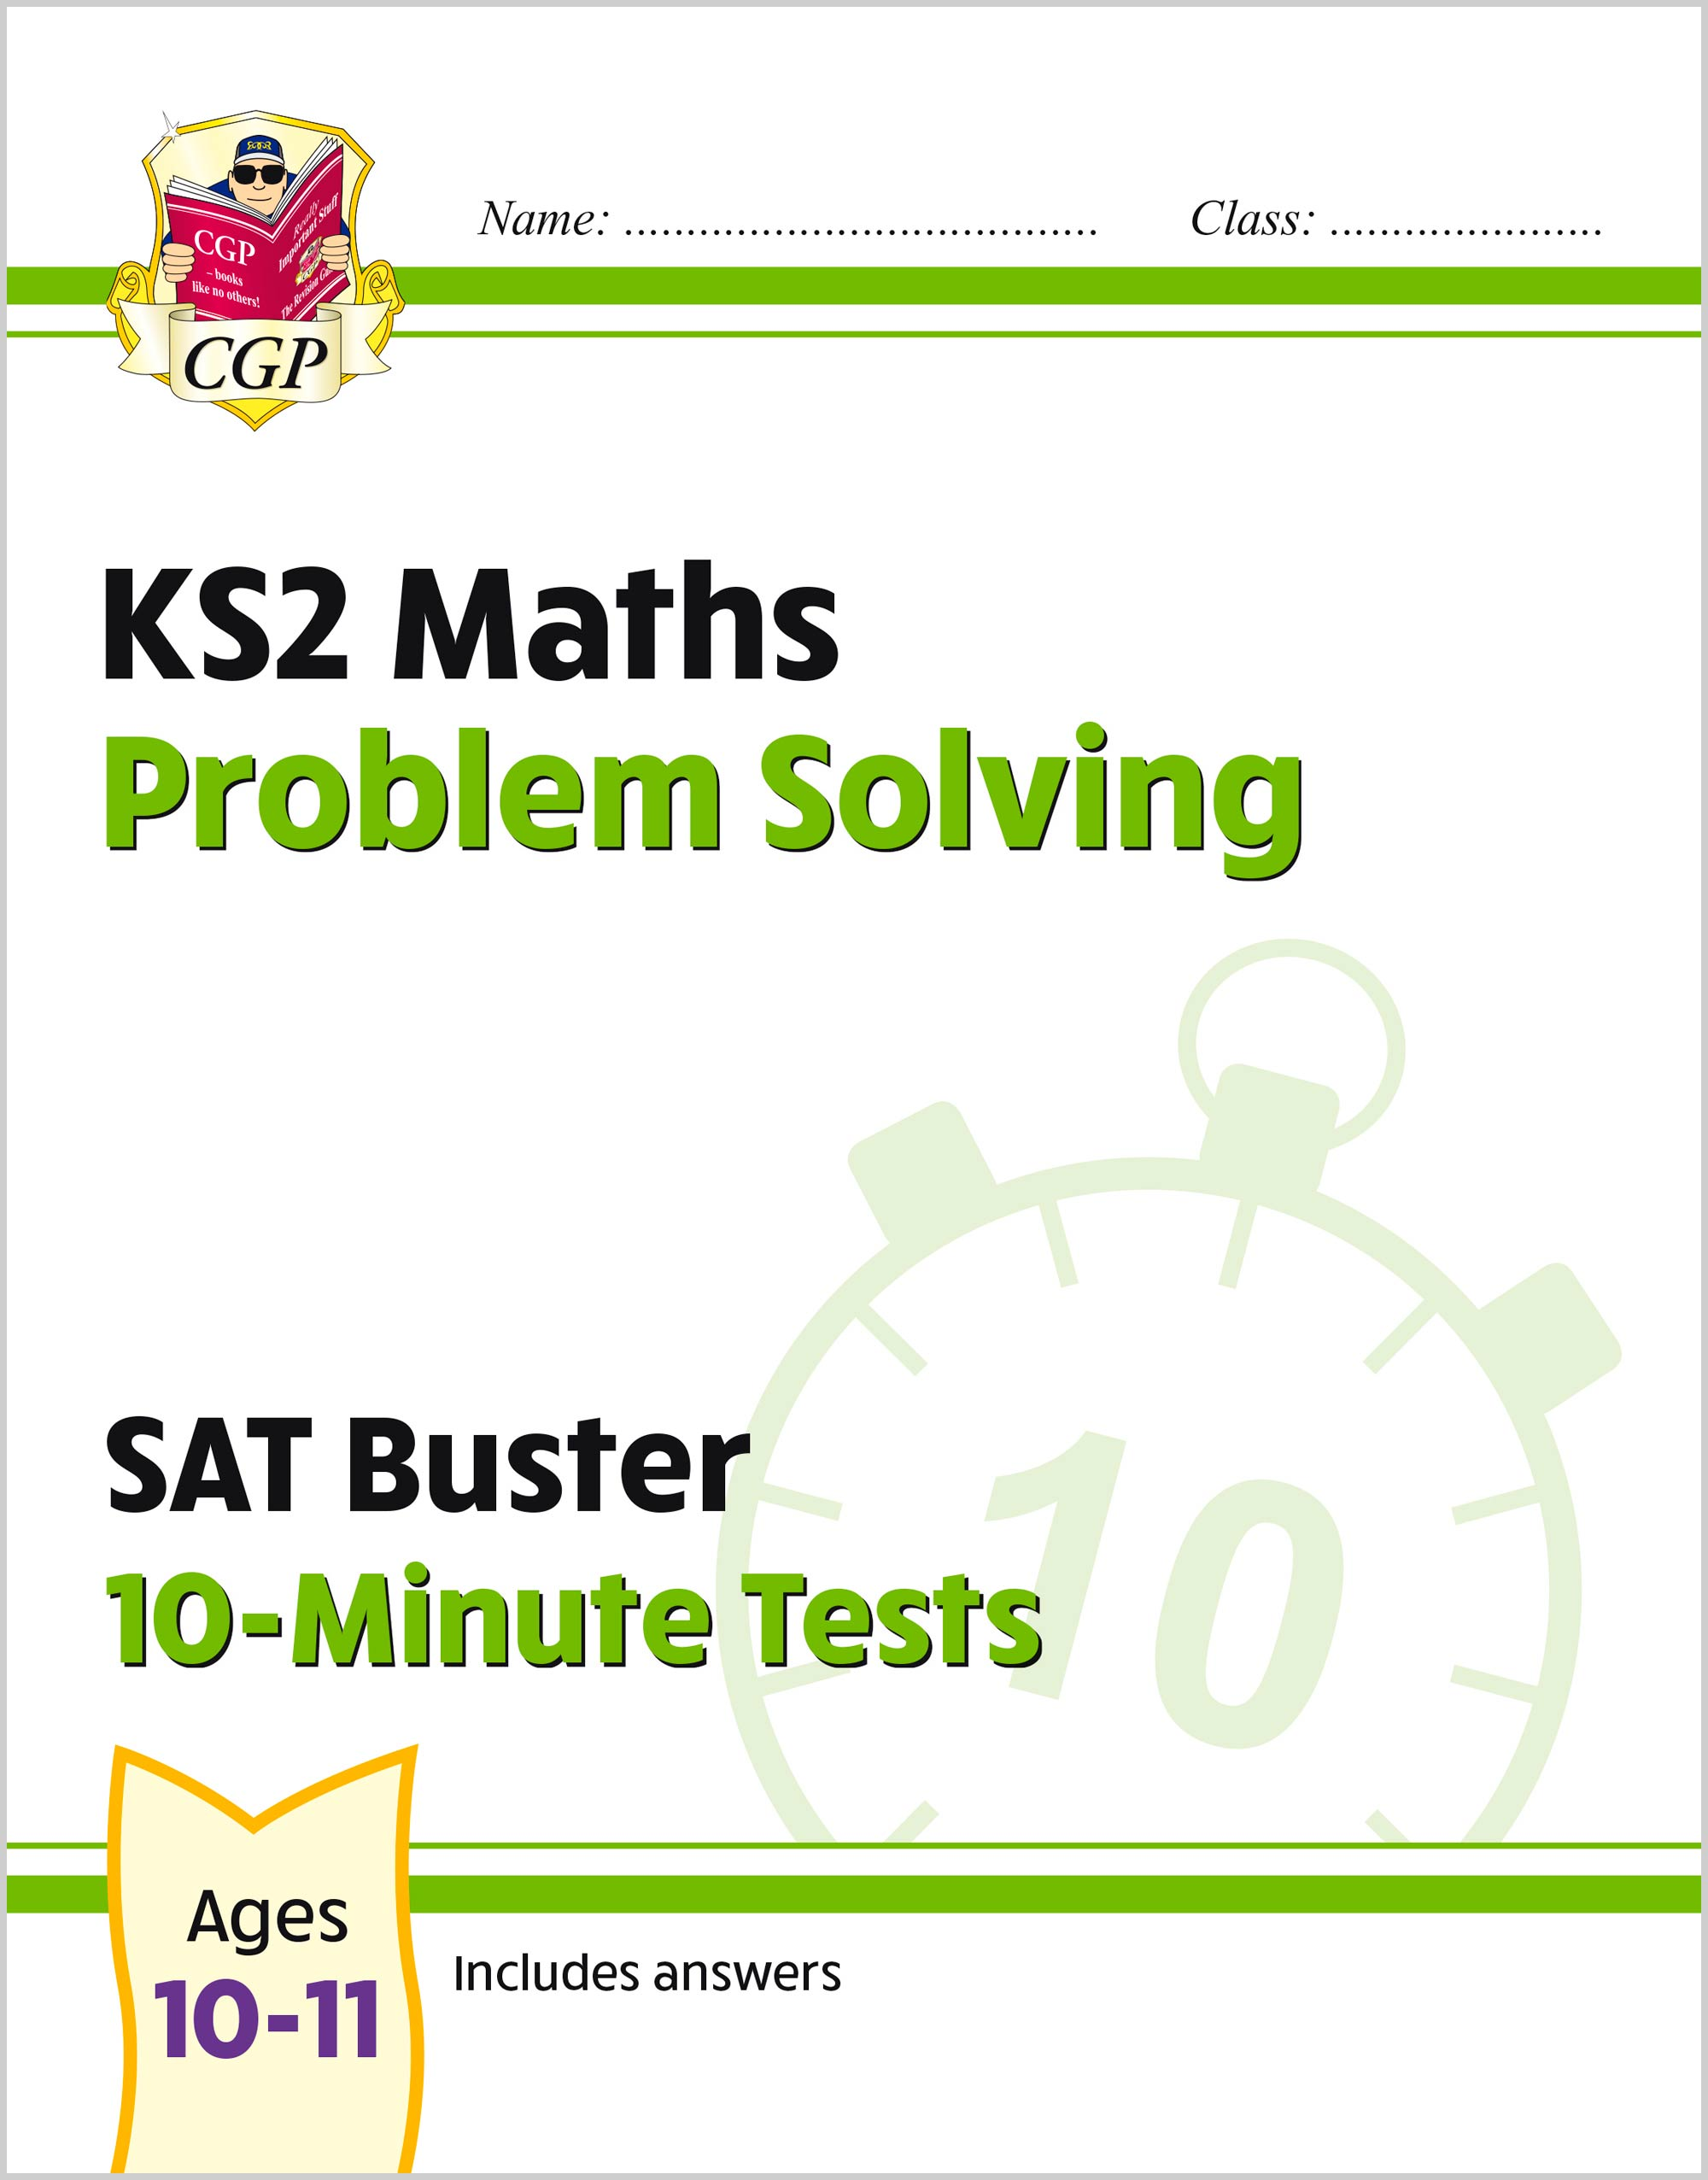 MPSXP21 - New KS2 Maths SAT Buster 10-Minute Tests - Problem Solving